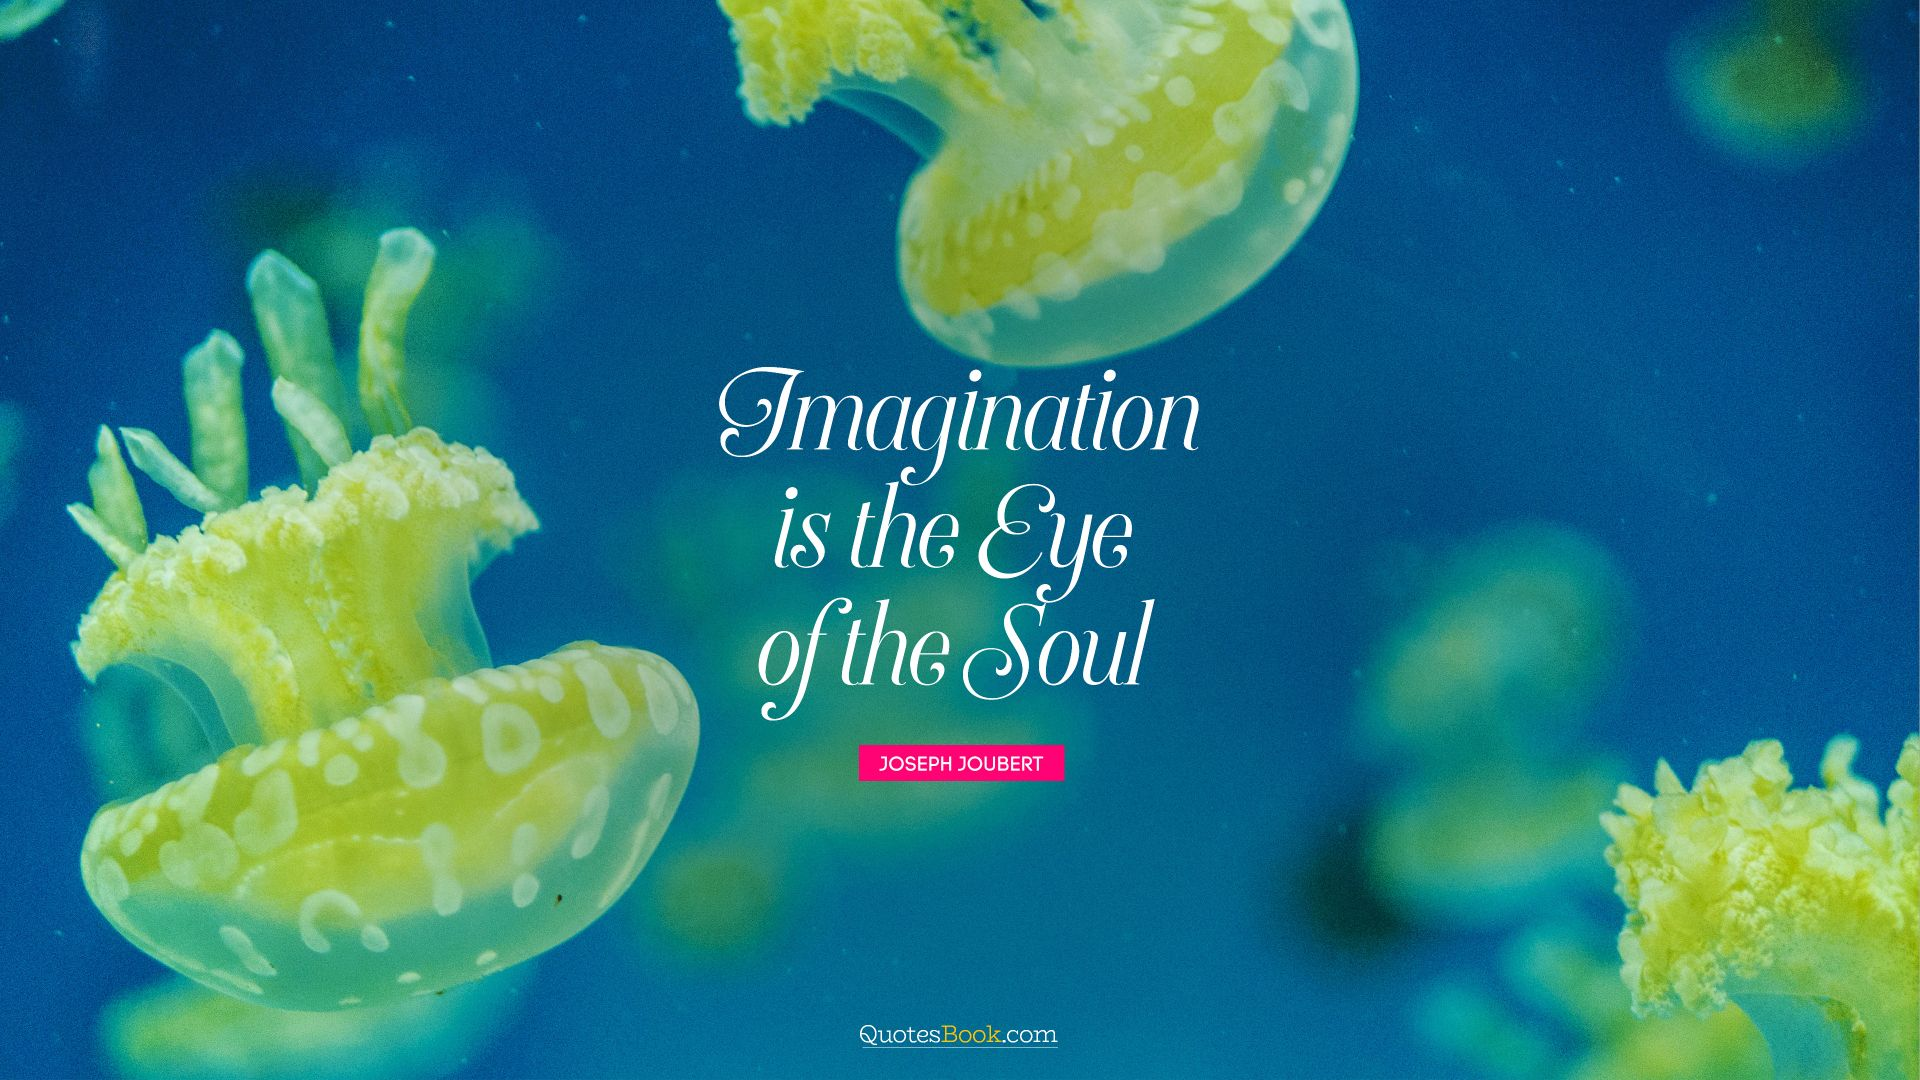 Imagination is the eye of the soul. - Quote by Joseph Joubert